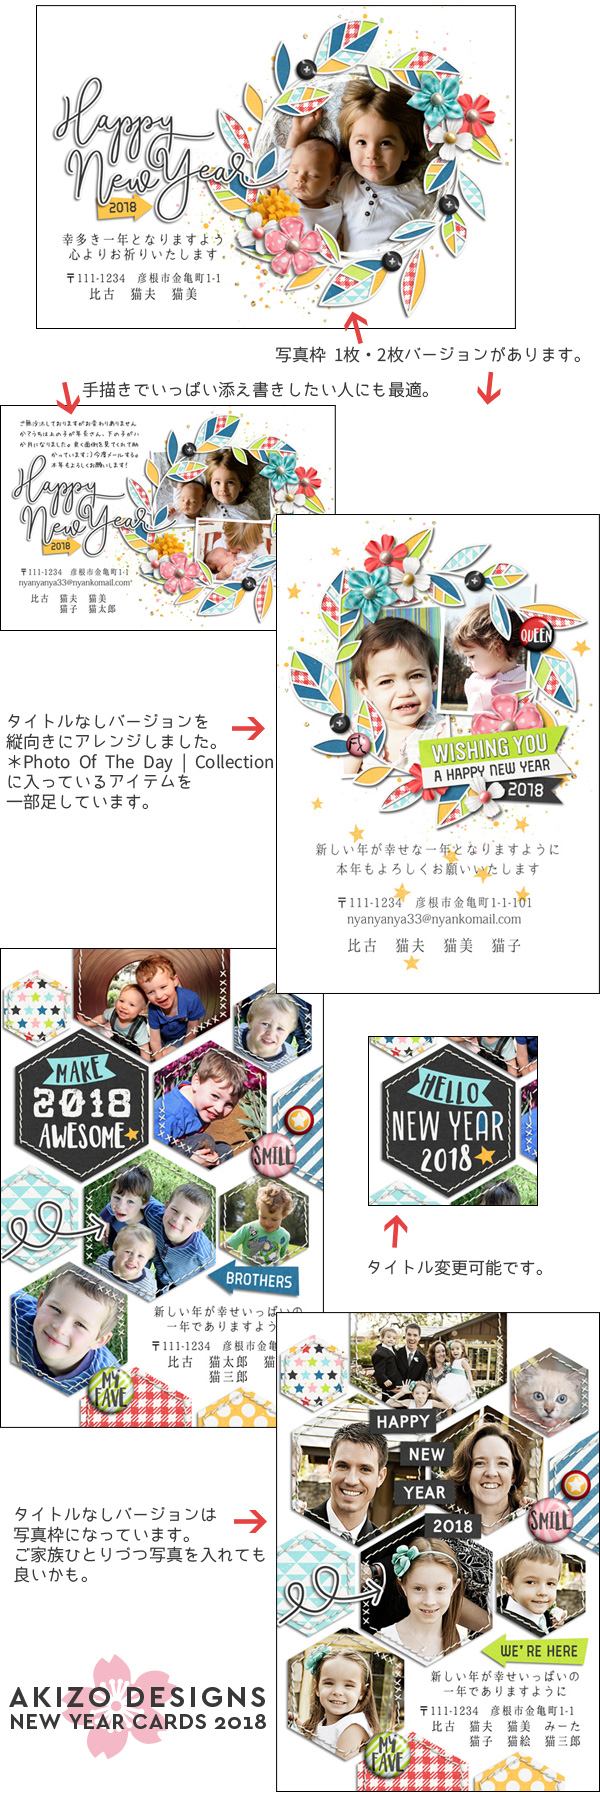 Layout Sample of New Year Greetings 2018